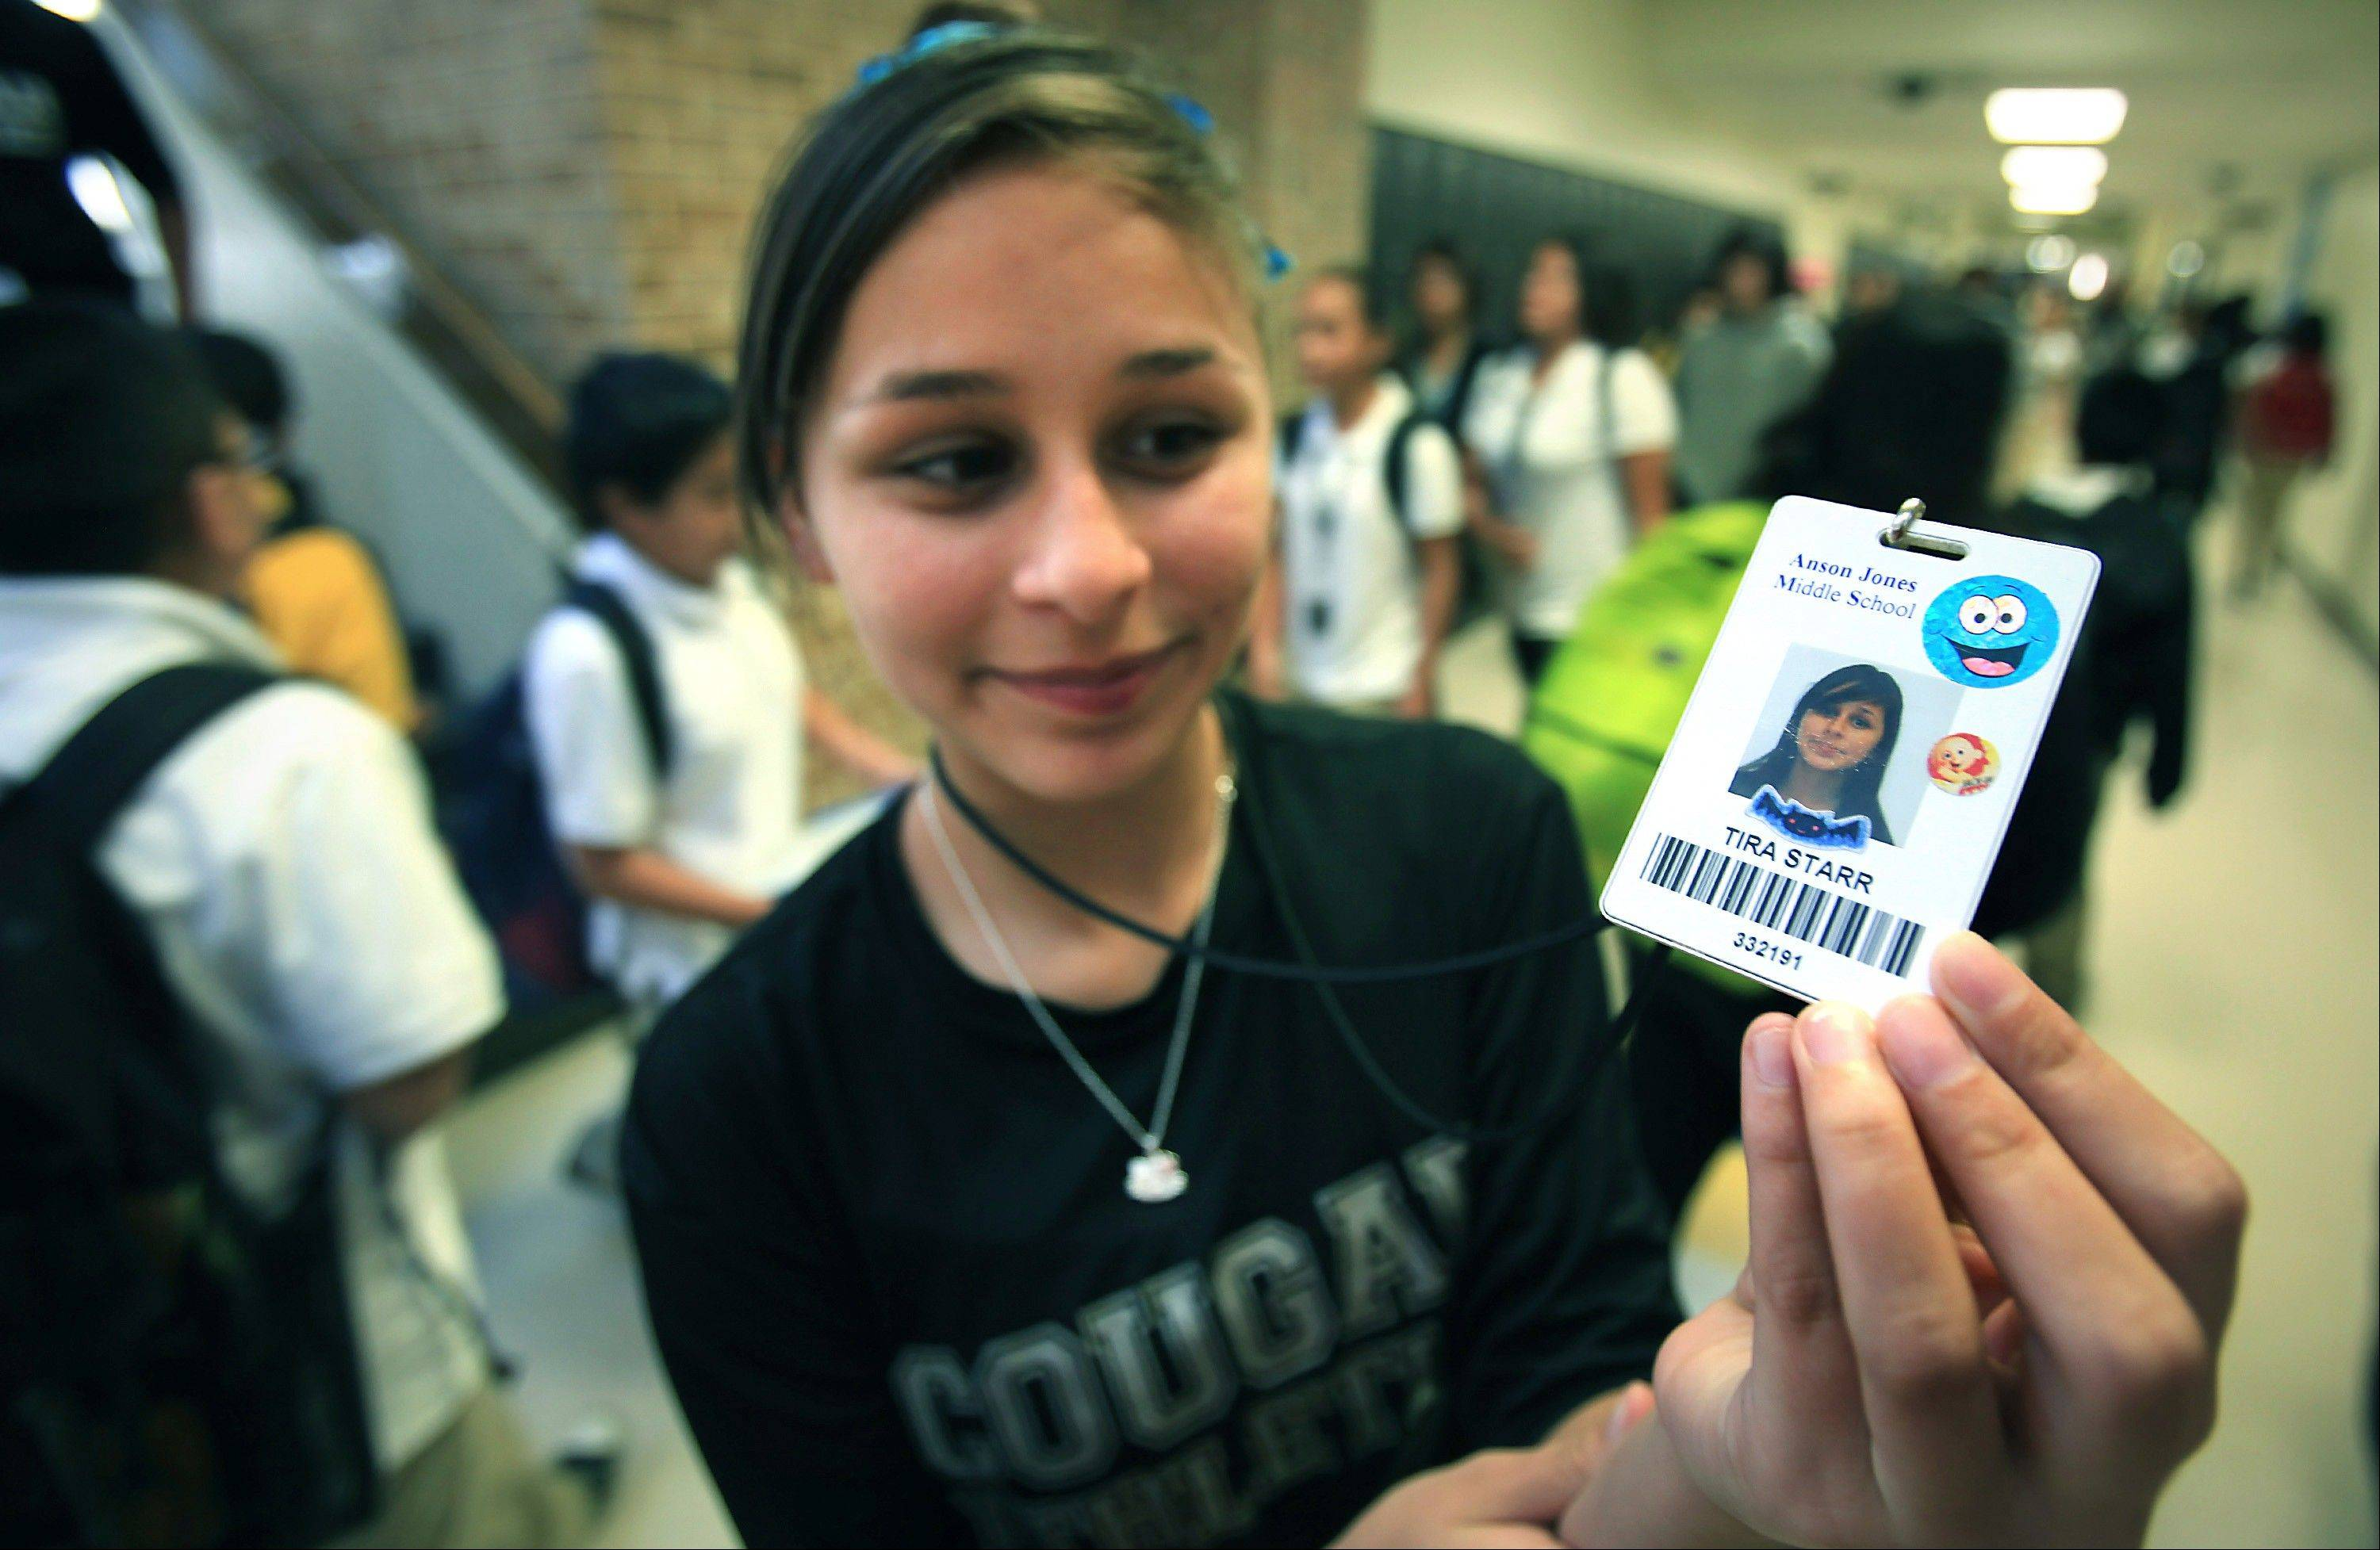 Tira Starr, an 8th grader at Anson Jones Middle School, shows her ID badge as students change classes in San Antonio, Texas. All students at the school are required to carry identification cards embedded with a microchip. They are tracked by the dozens of electronic readers installed in the schools' ceiling panels.